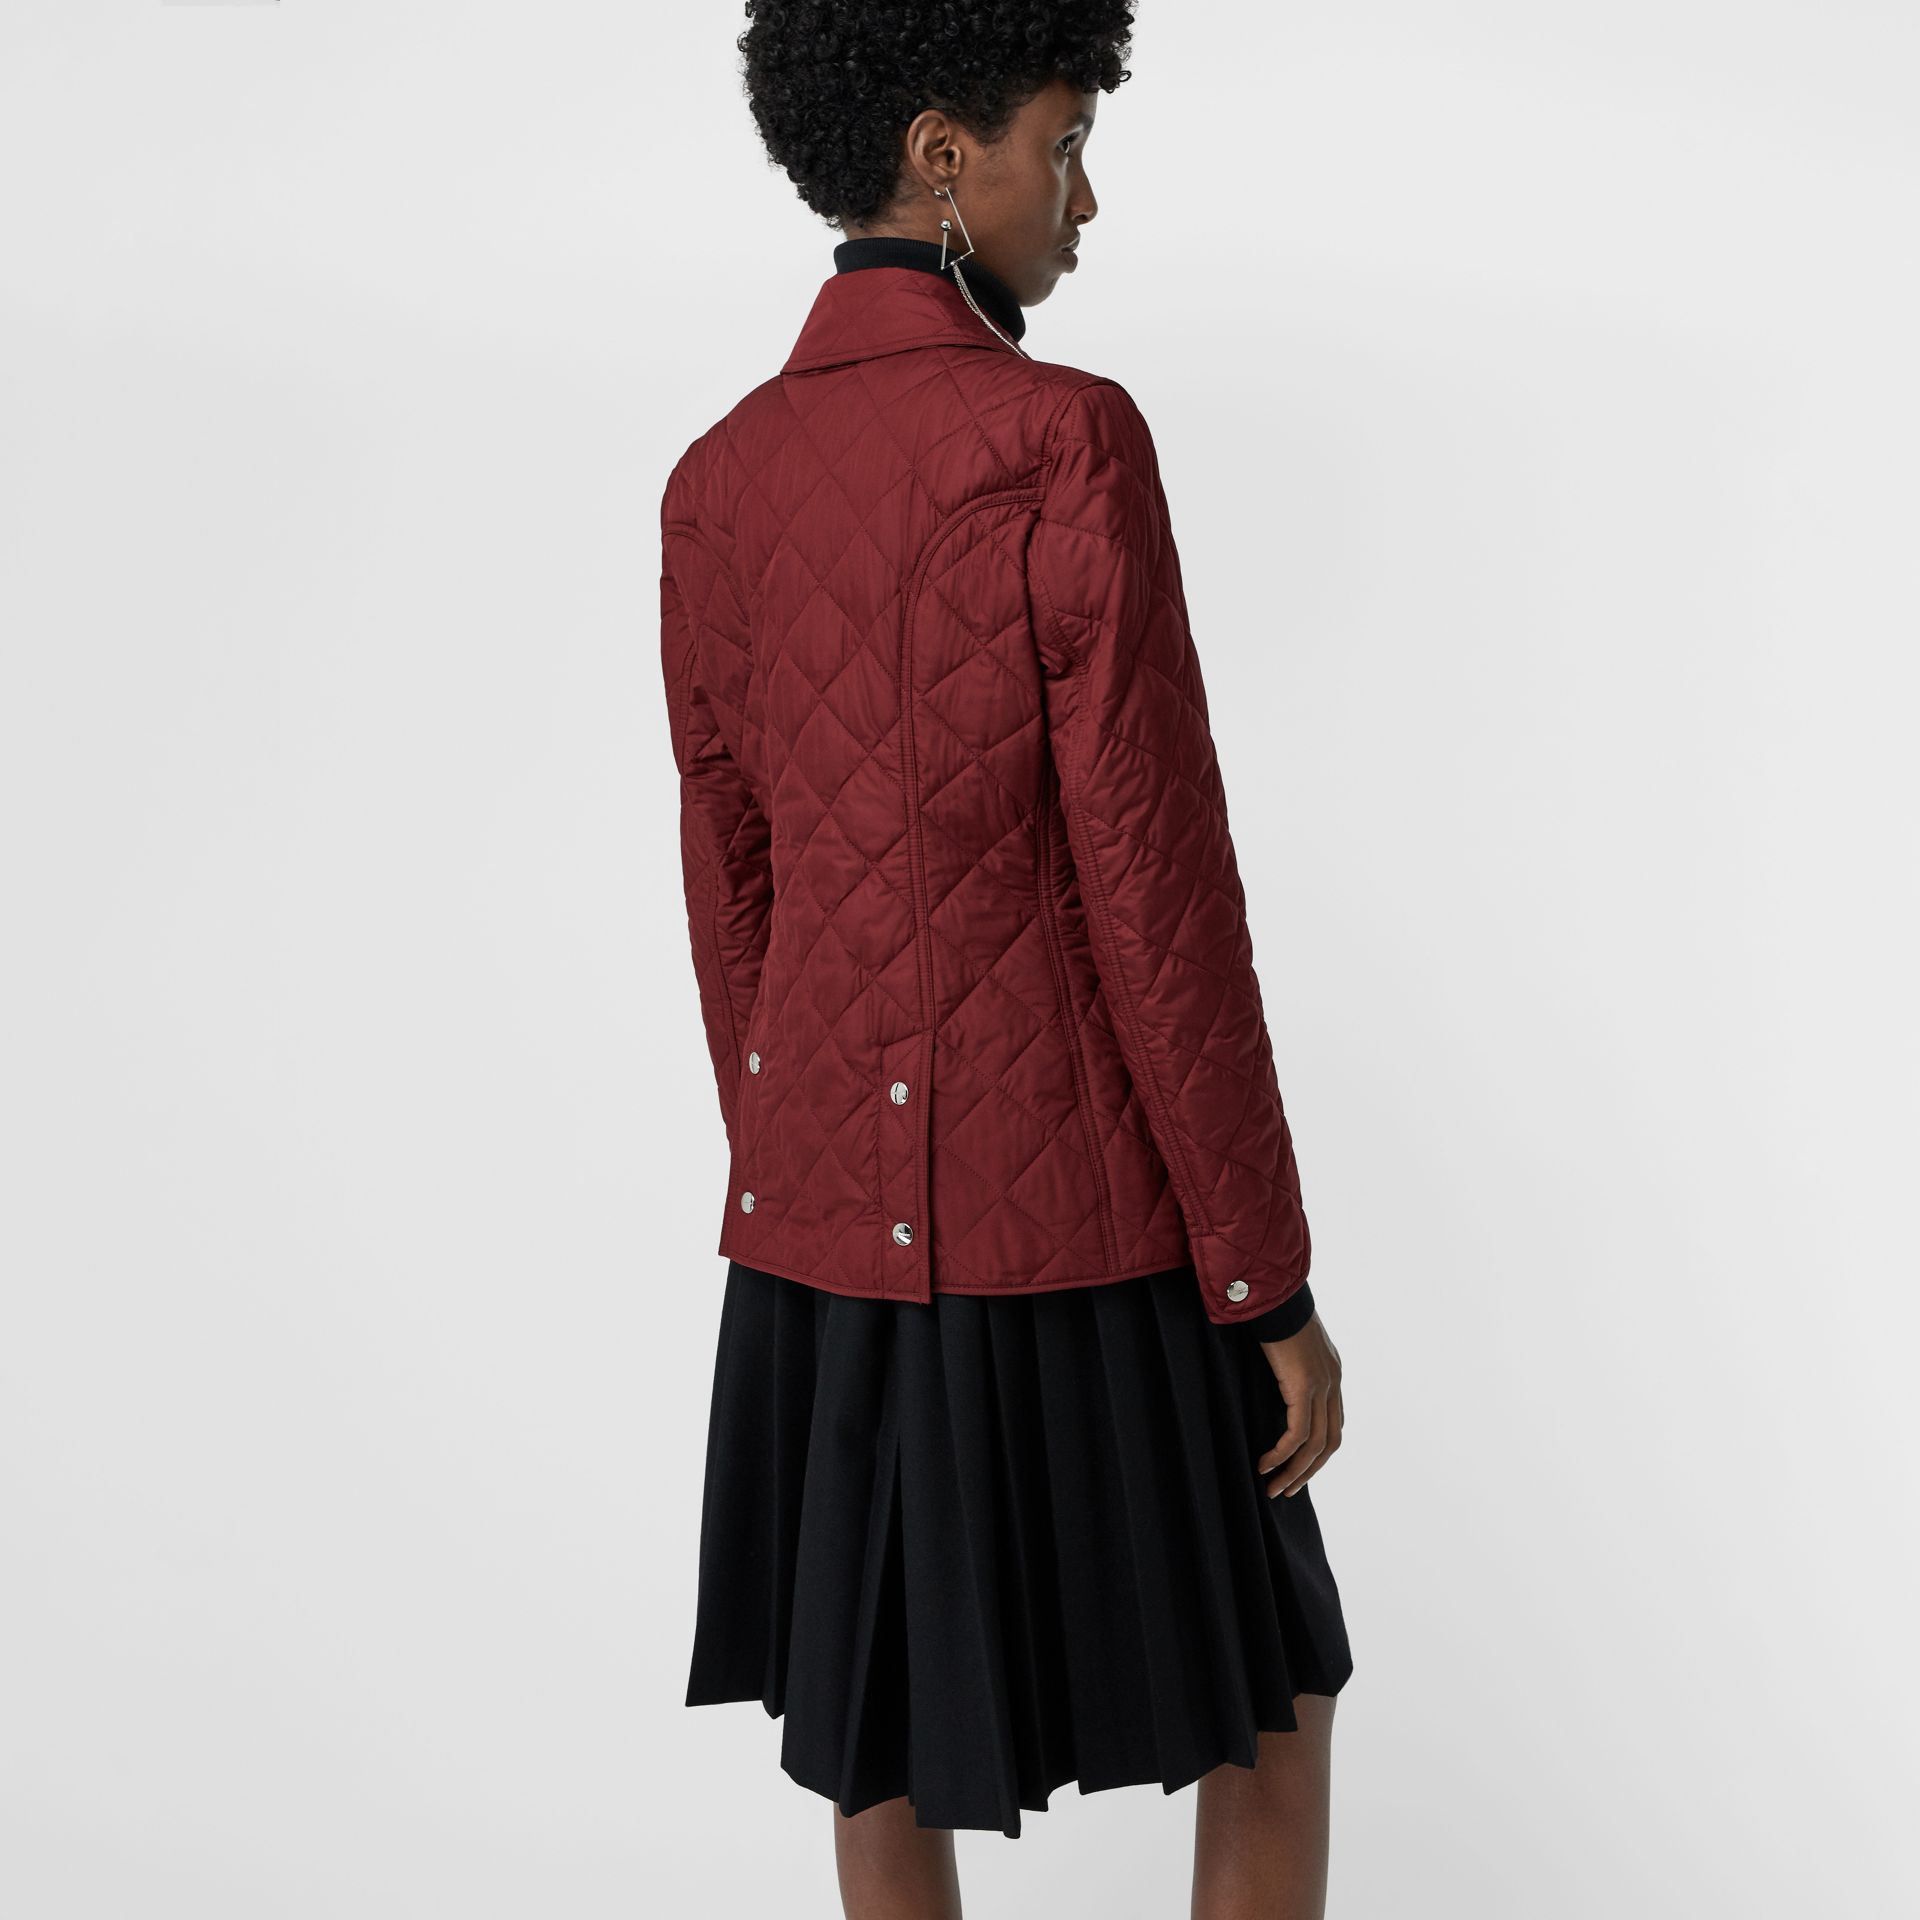 Embroidered Crest Diamond Quilted Jacket in Damson - Women | Burberry Australia - gallery image 2